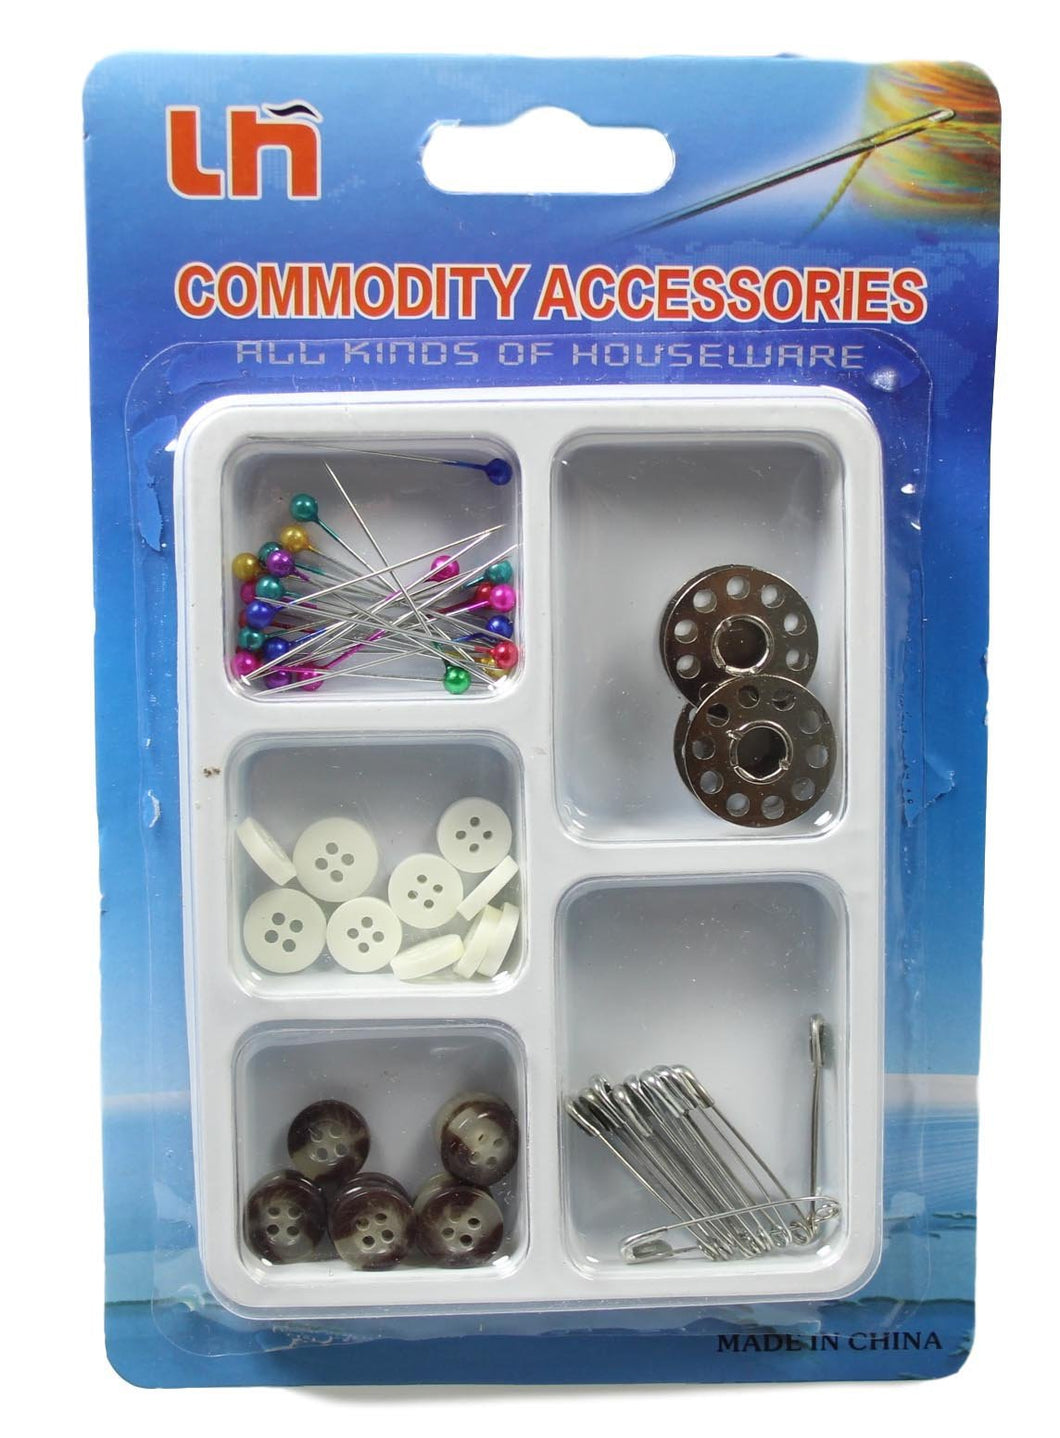 Stationary Sewing Kit Multipurpose Use Art And Crafts Kit 5242 (Parcel Rate)